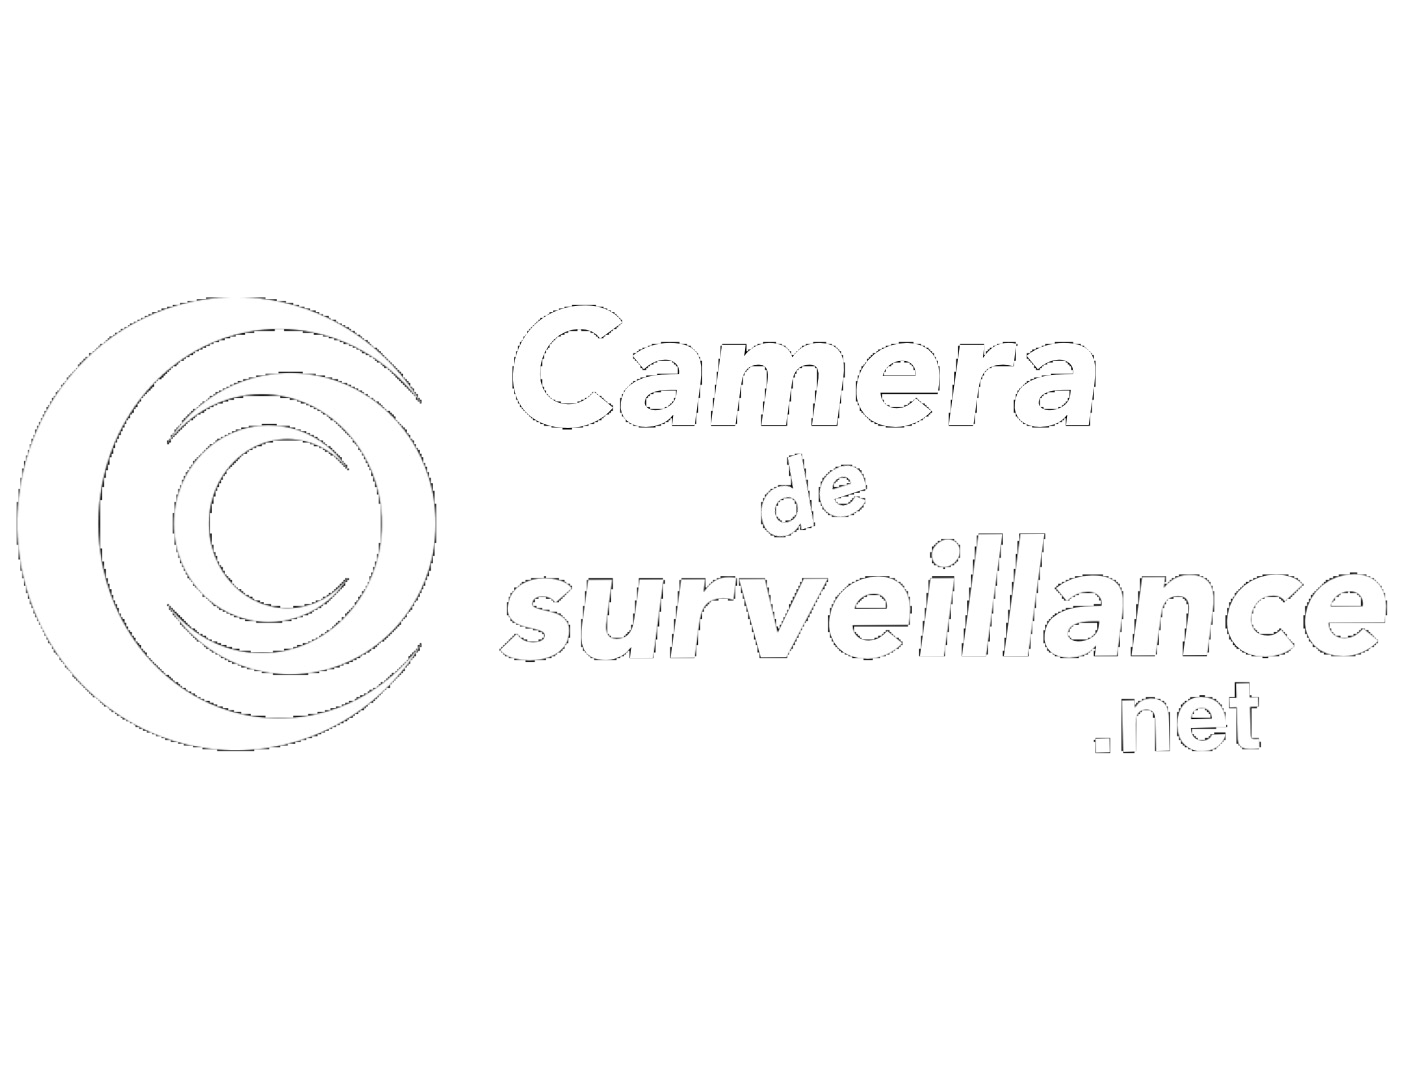 (c) Camera-de-surveillance.net